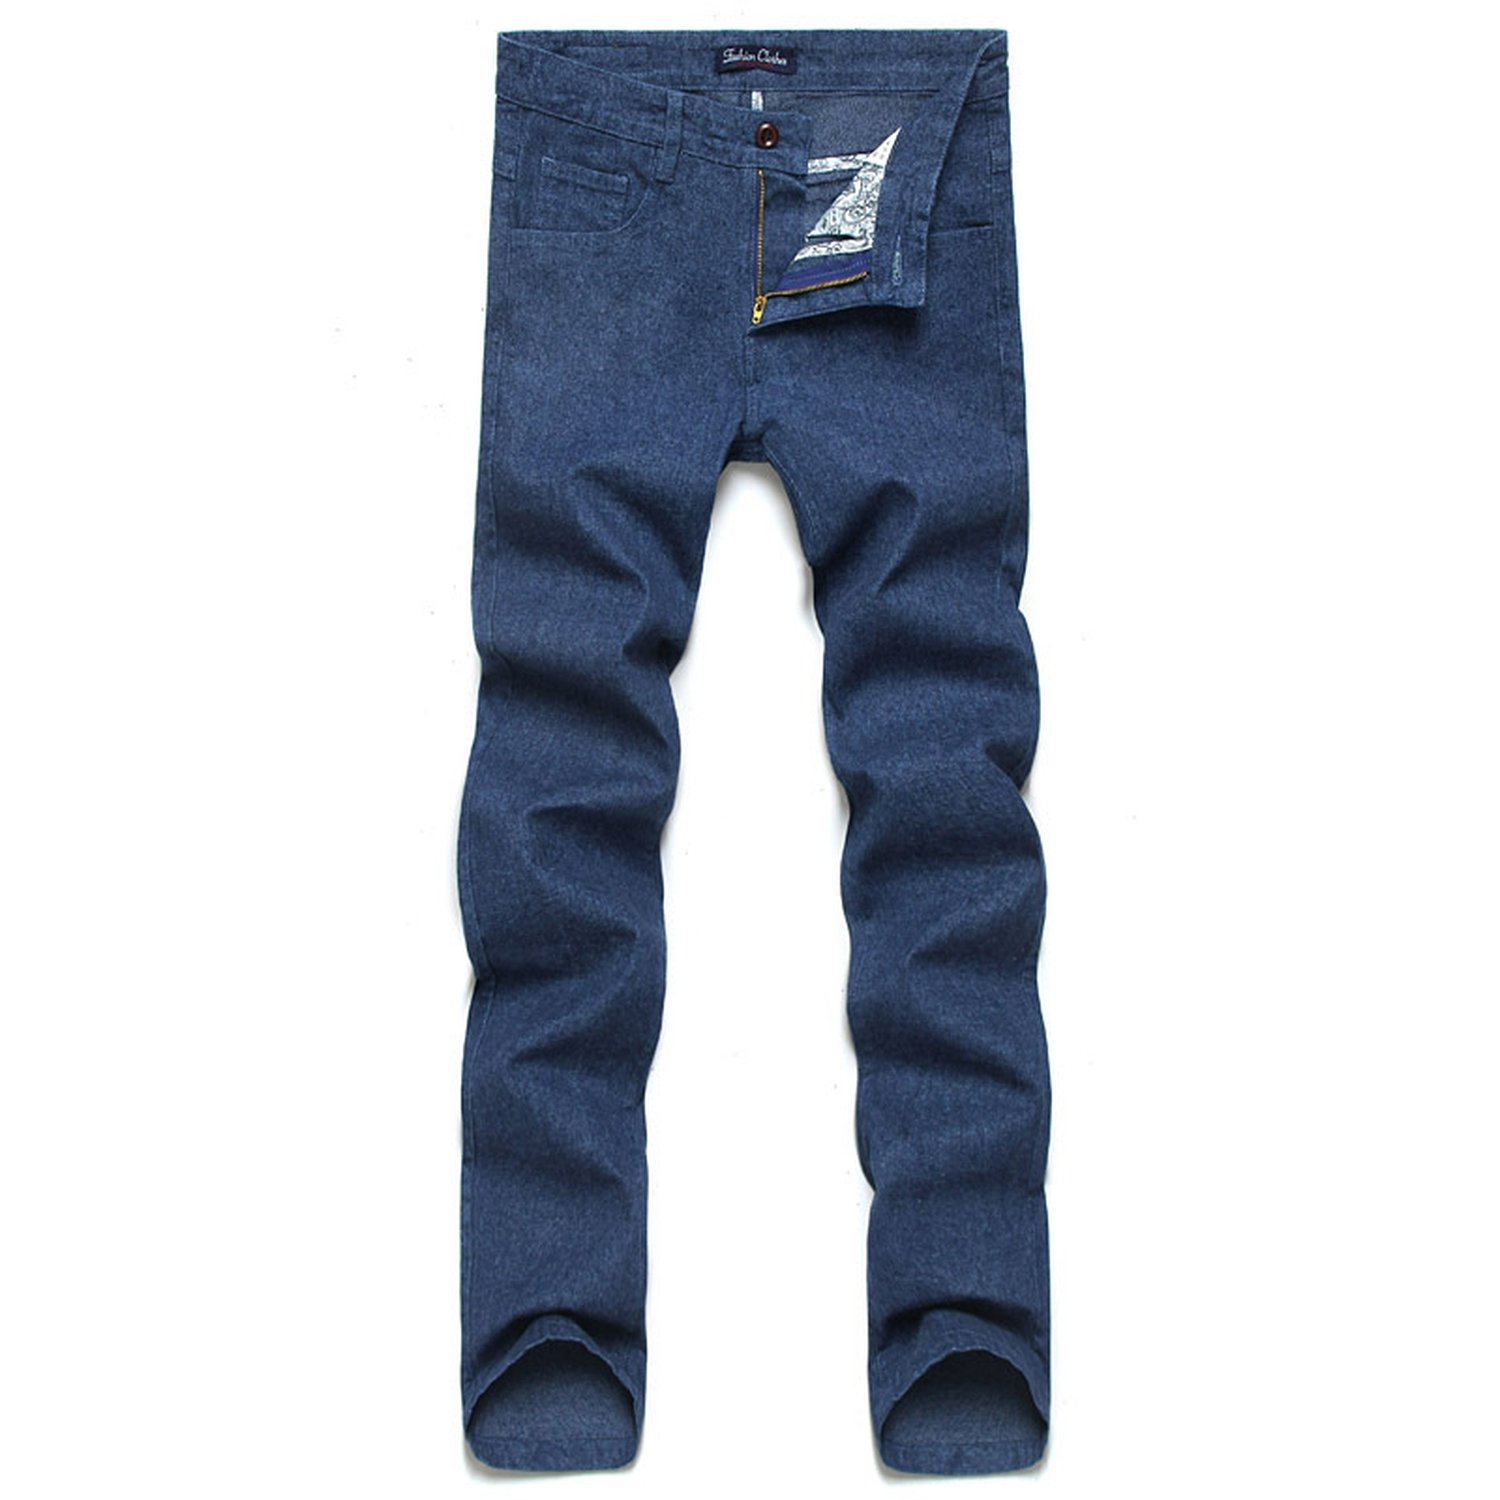 Men's Cotton and Linen Casual Pants 2018 Autumn and Winter hot New Slim Waist Straight,Denim Blue,42